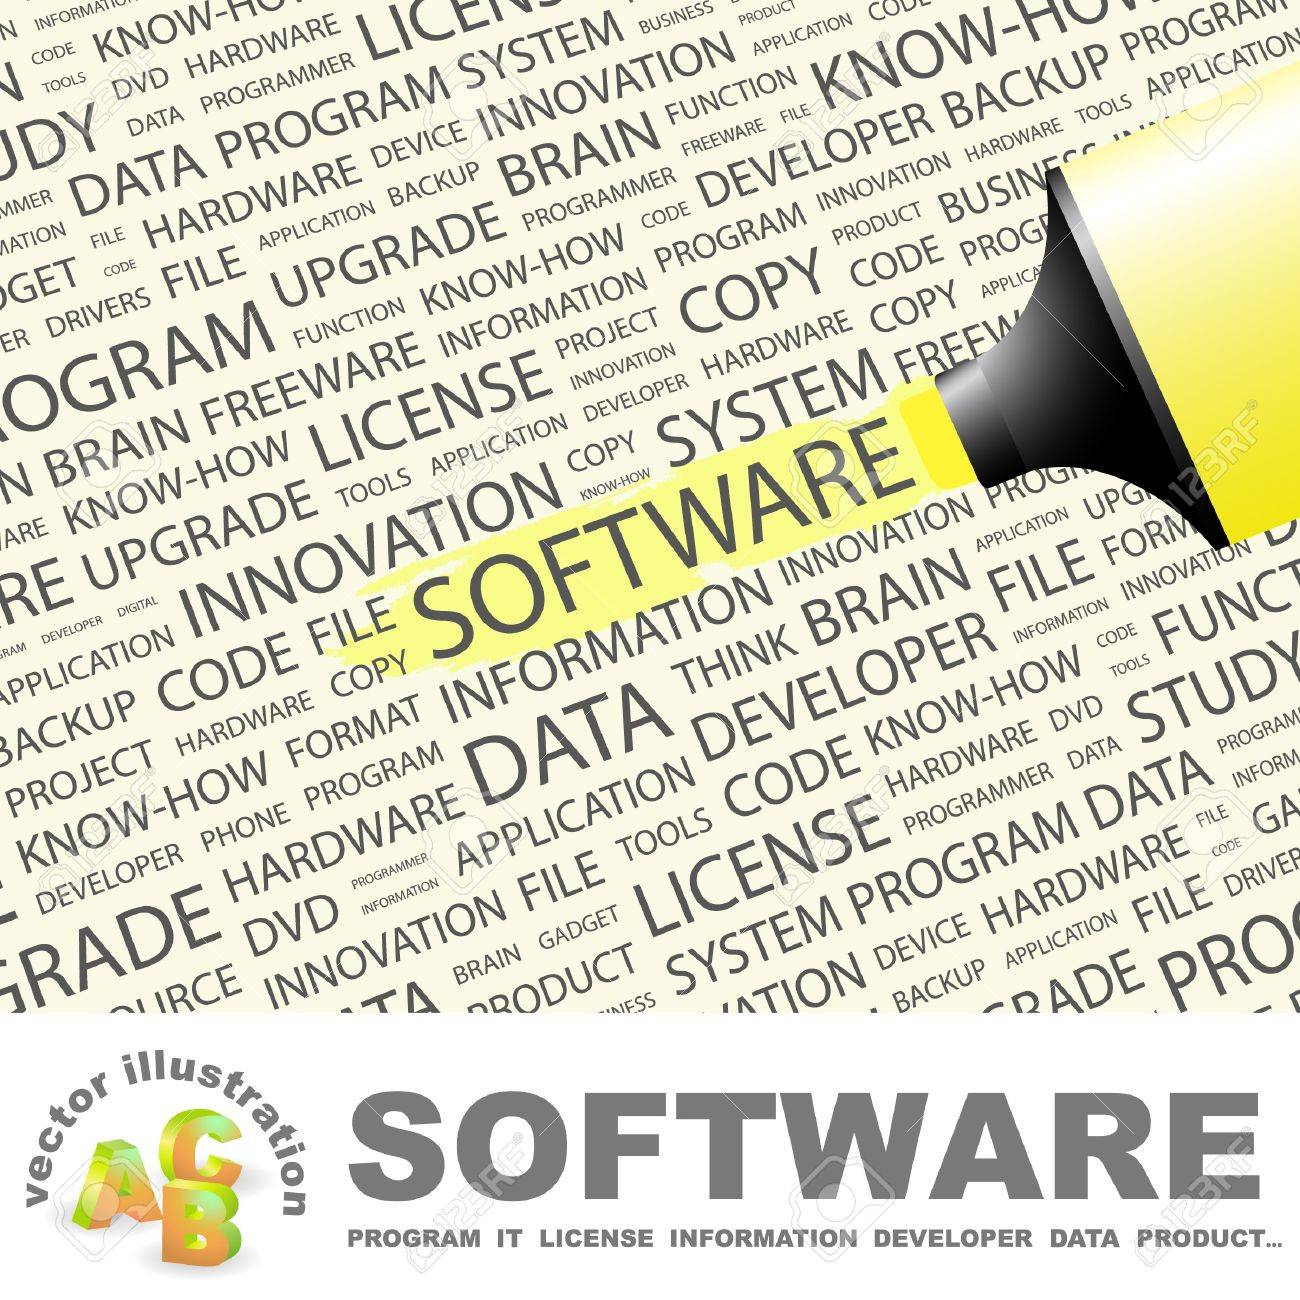 SOFTWARE. Highlighter over background with different association terms. Vector illustration. Stock Vector - 9409310